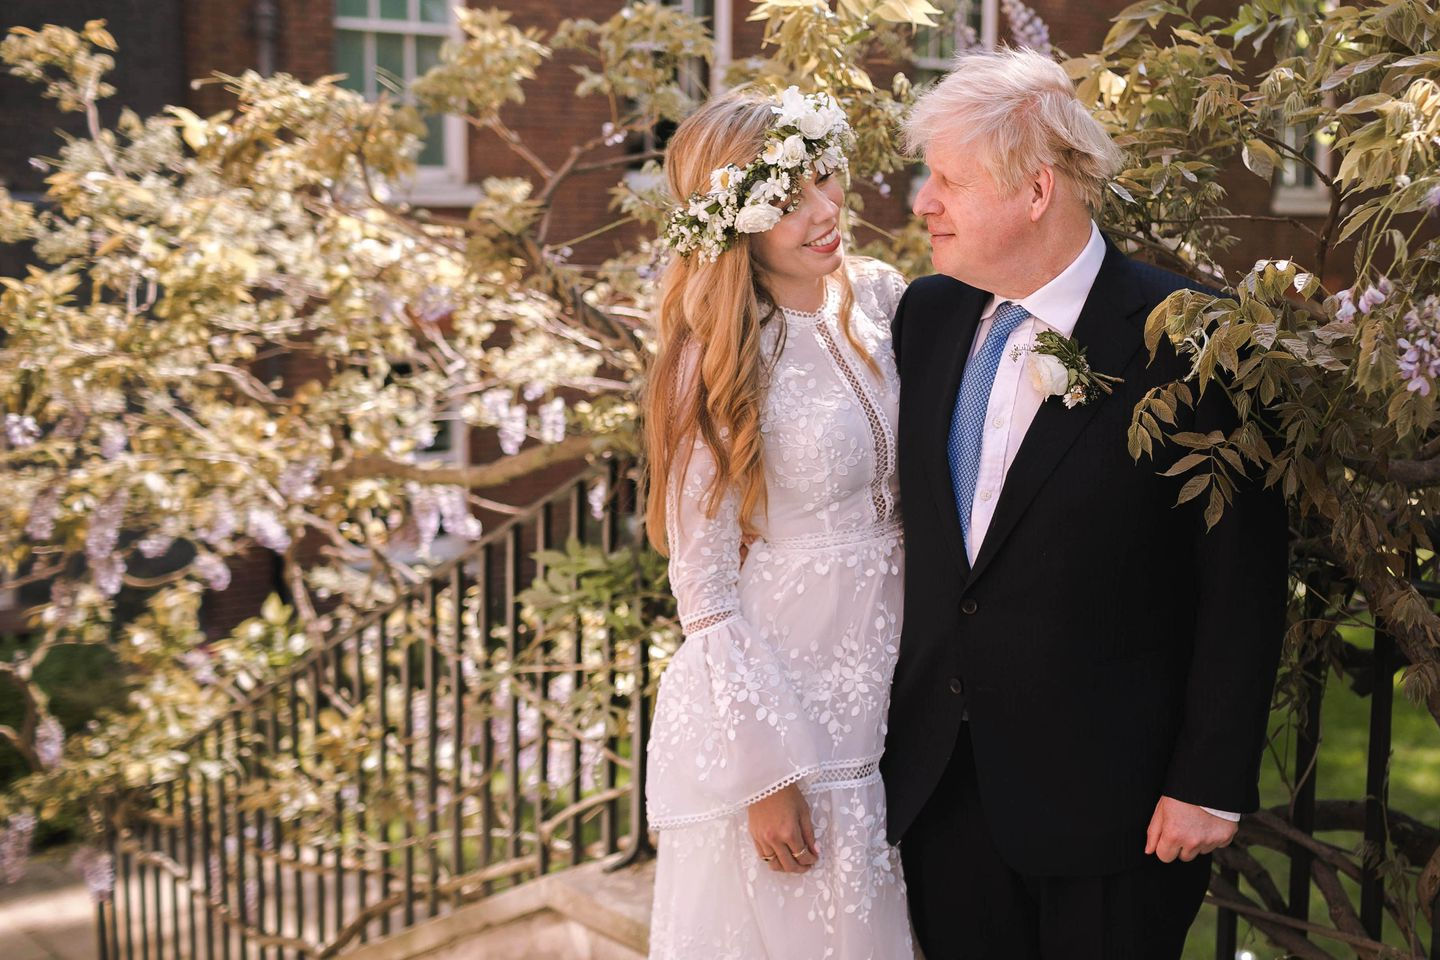 Prime Minister Boris Johnson posed with his wife Carrie Johnson in the garden of 10 Downing Street following their wedding at Westminster Cathedral, May 29, 2021 in London, England.